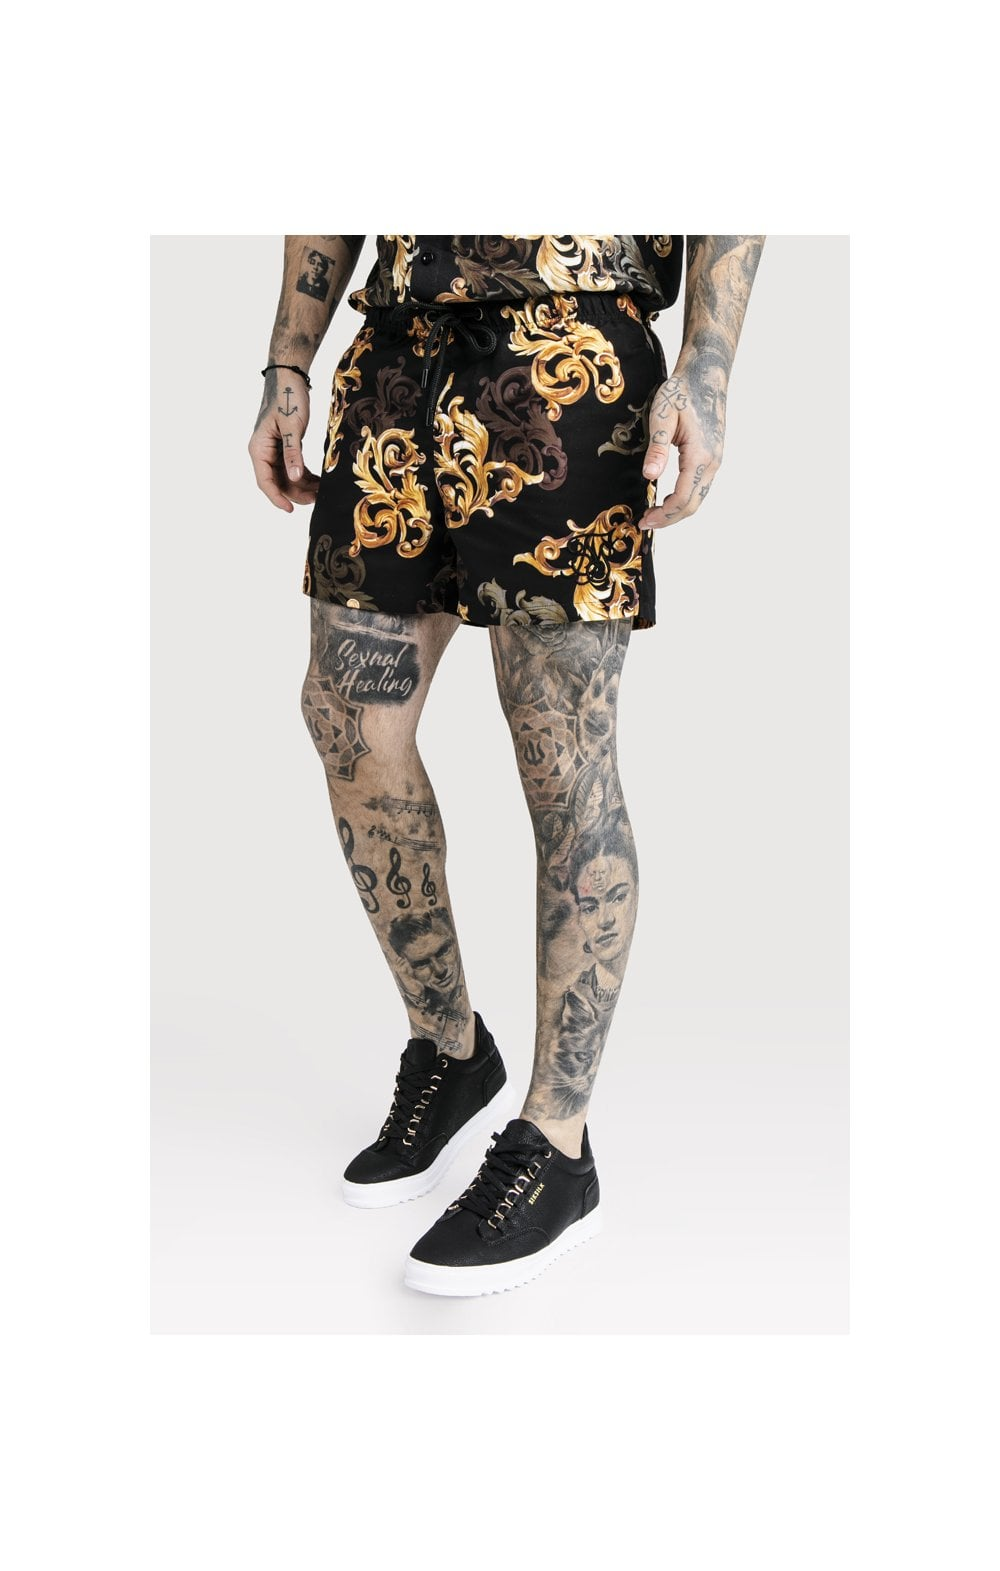 SikSilk x Dani Alves Swim Shorts - Black & Gold